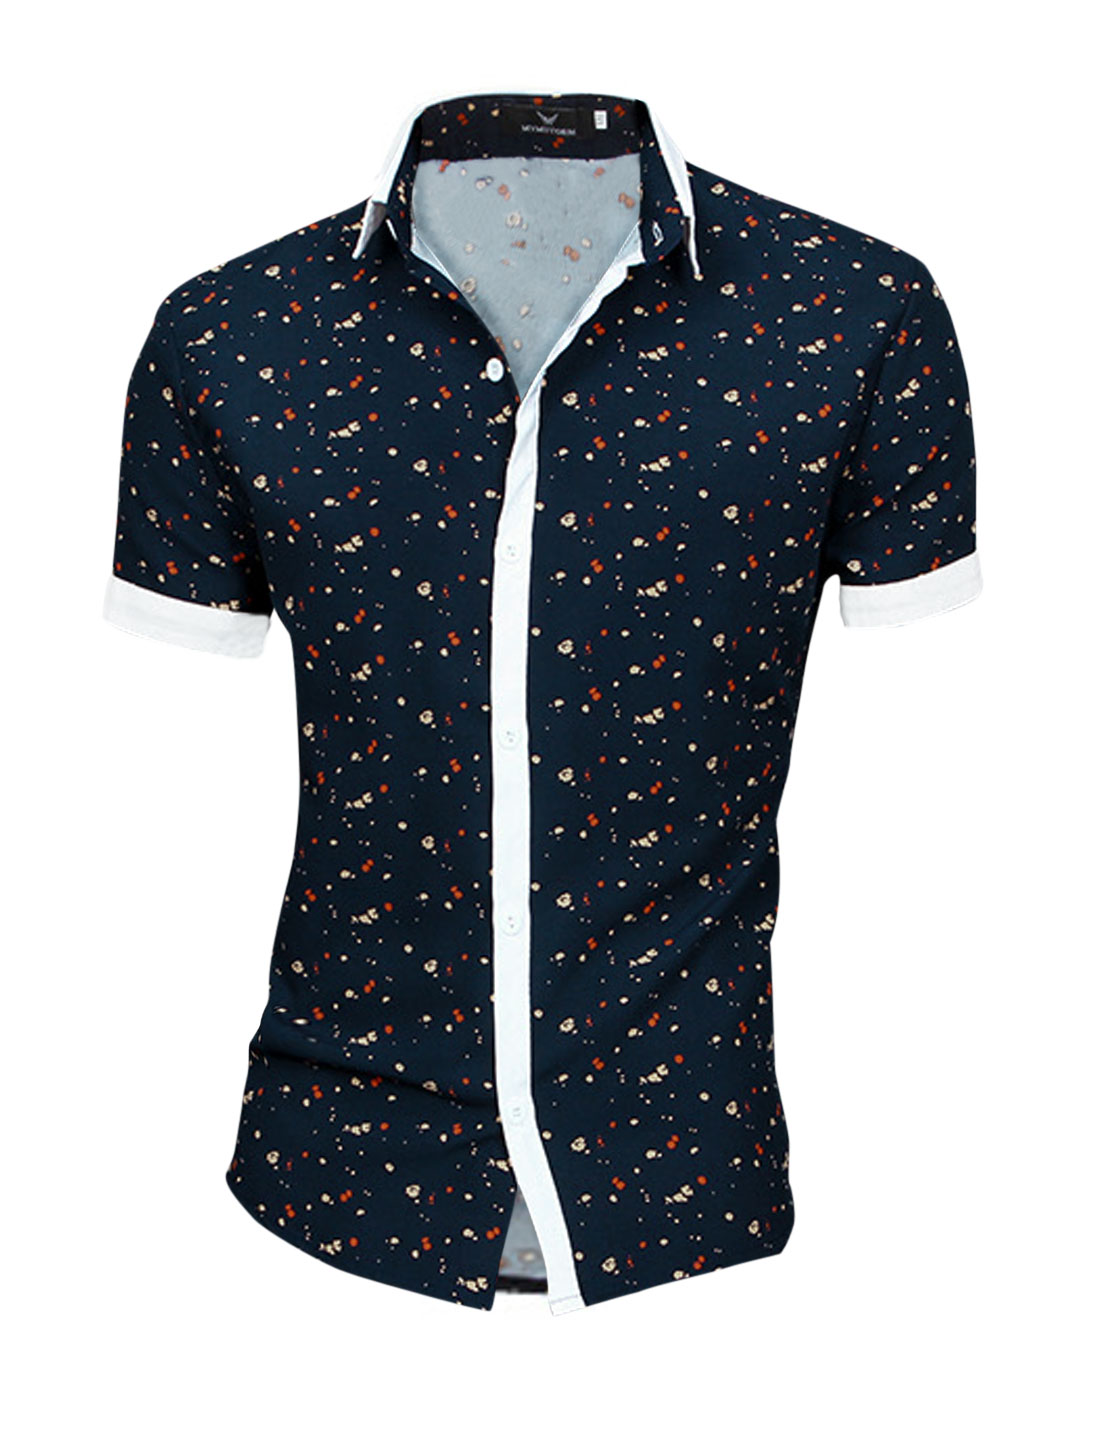 Men Point Collar Dots Pattern Panel Chic NEW Top Shirt Navy Blue M